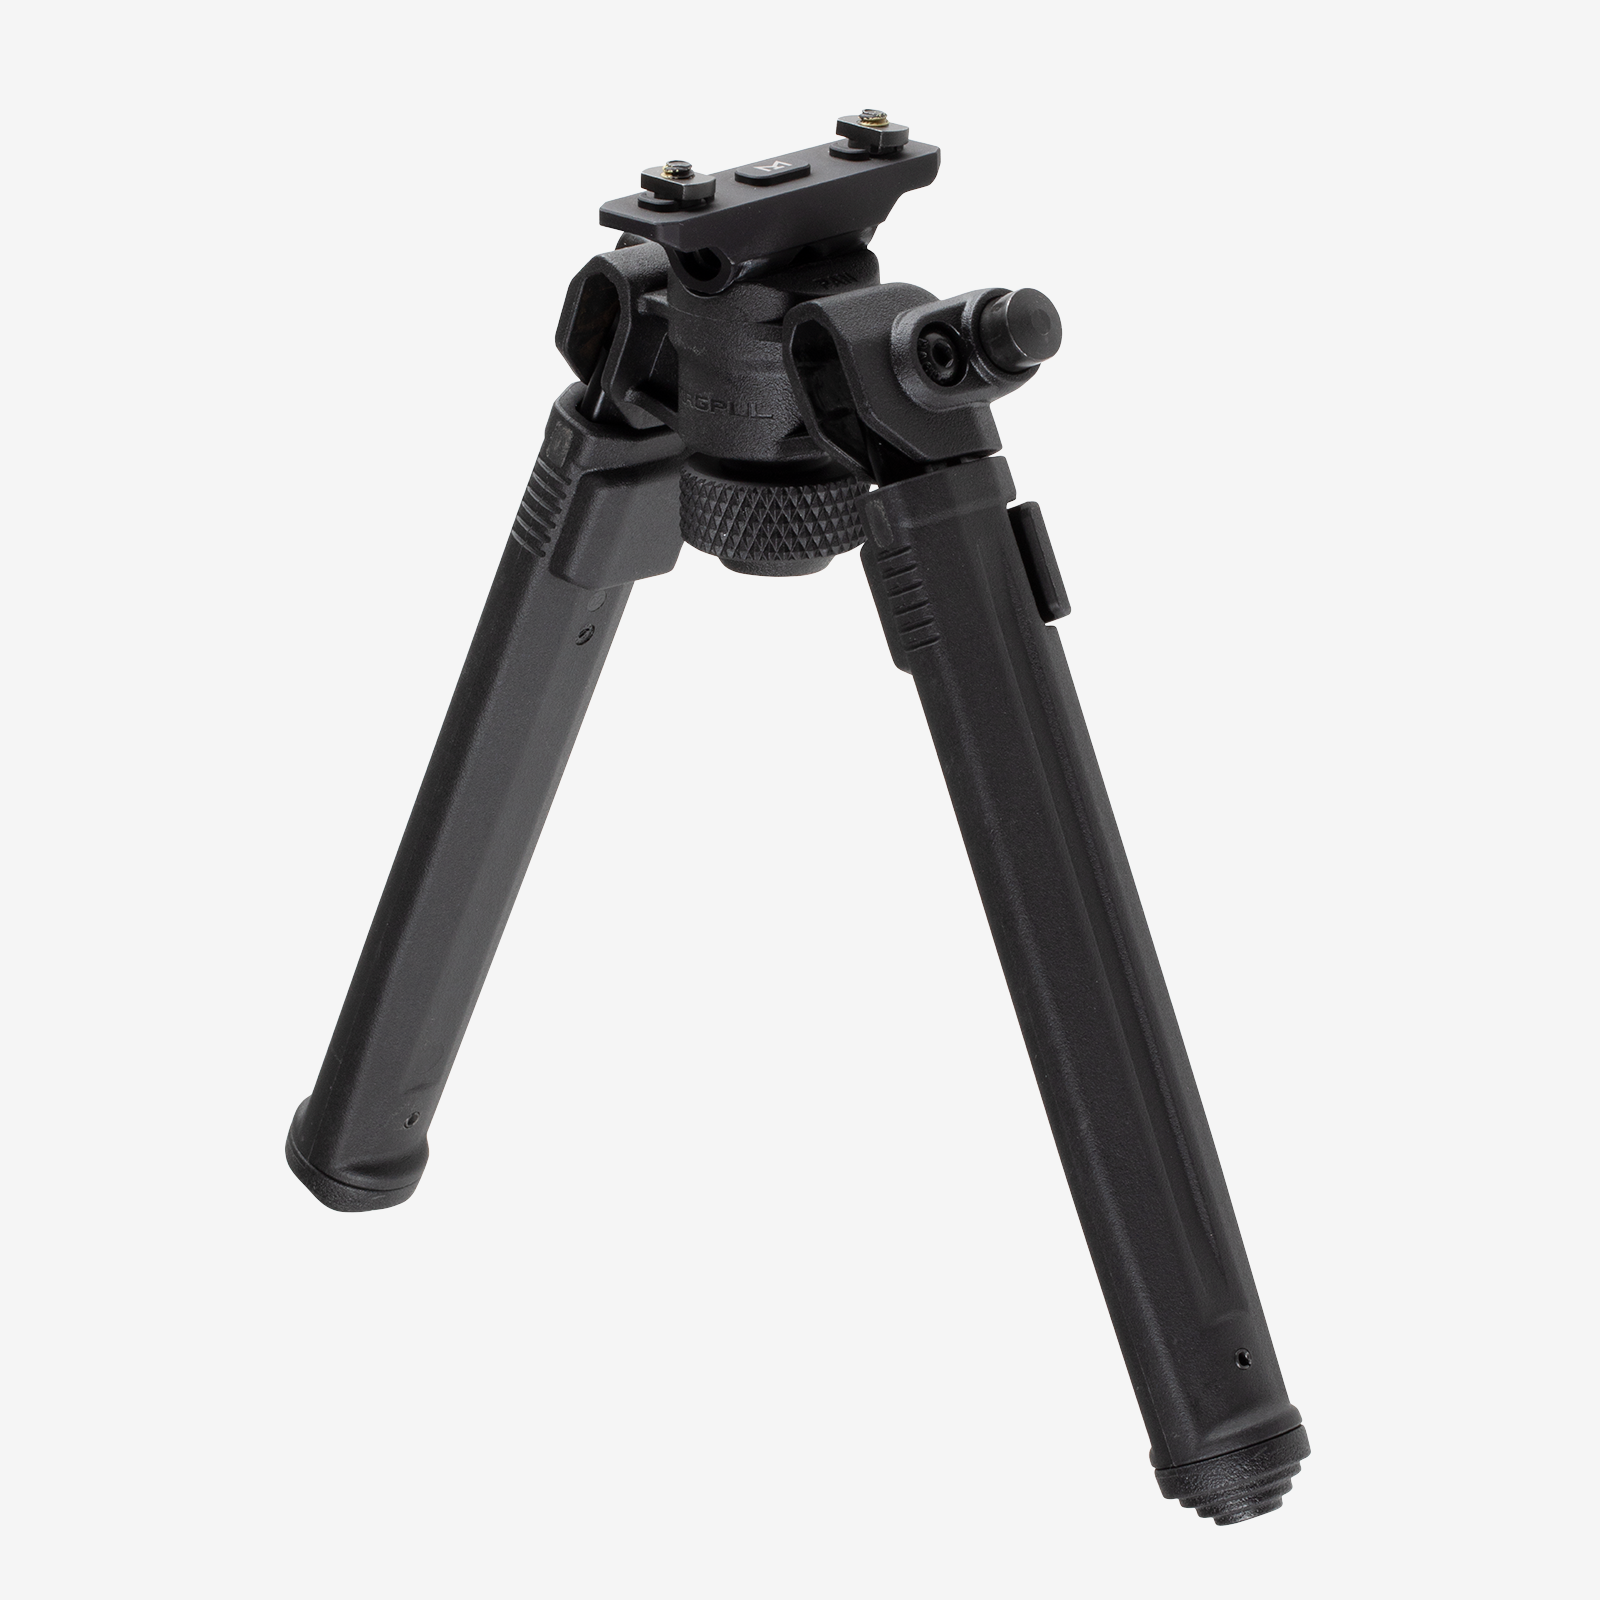 Magpul Bipod for Mlock - BLK